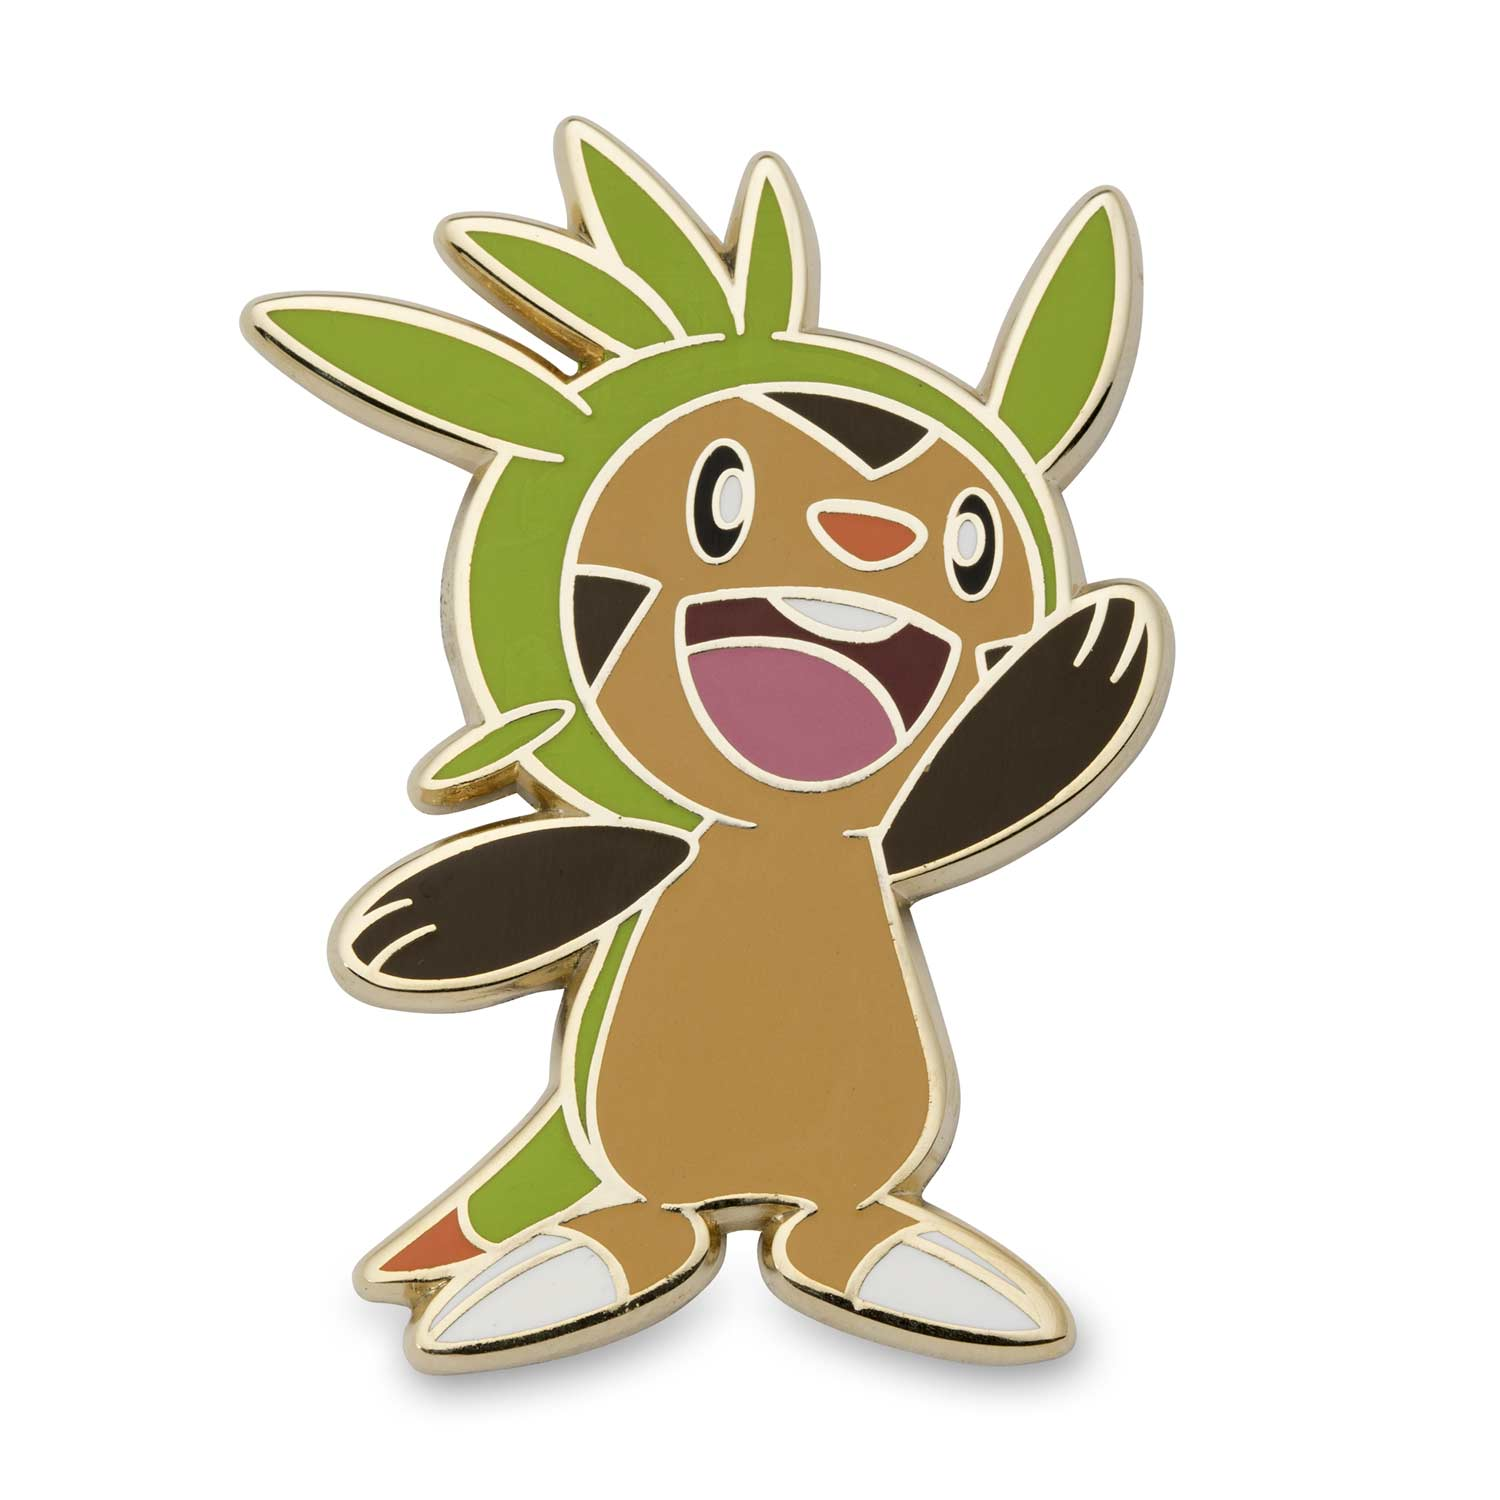 chespin fennekin froakie and pikachu pok233mon pins 4pack